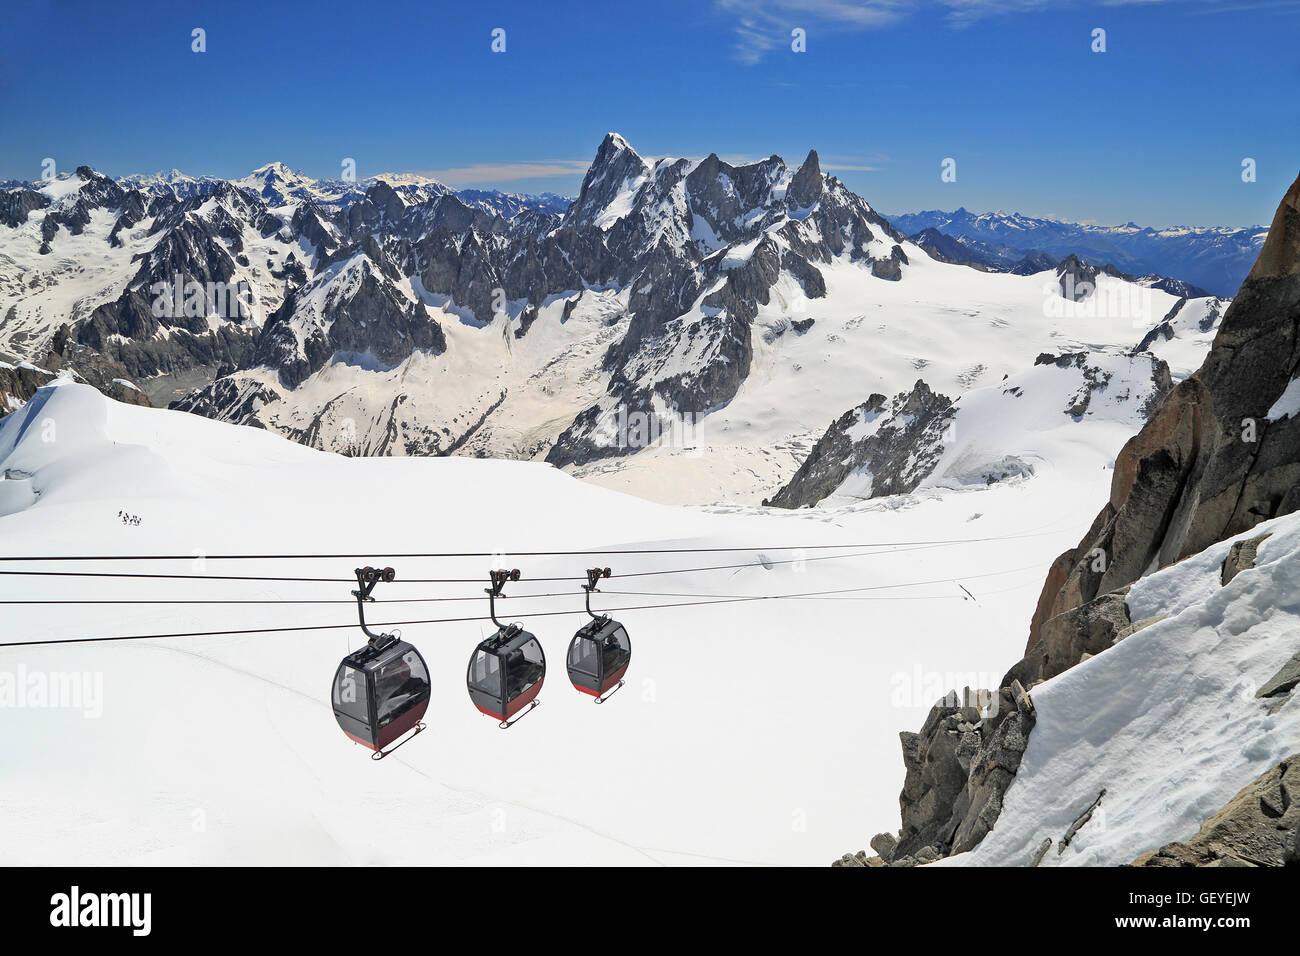 Tourists enjoying the majestic landscape in gondolas from Point Helbronner to Aiguille du Midi, France - Stock Image